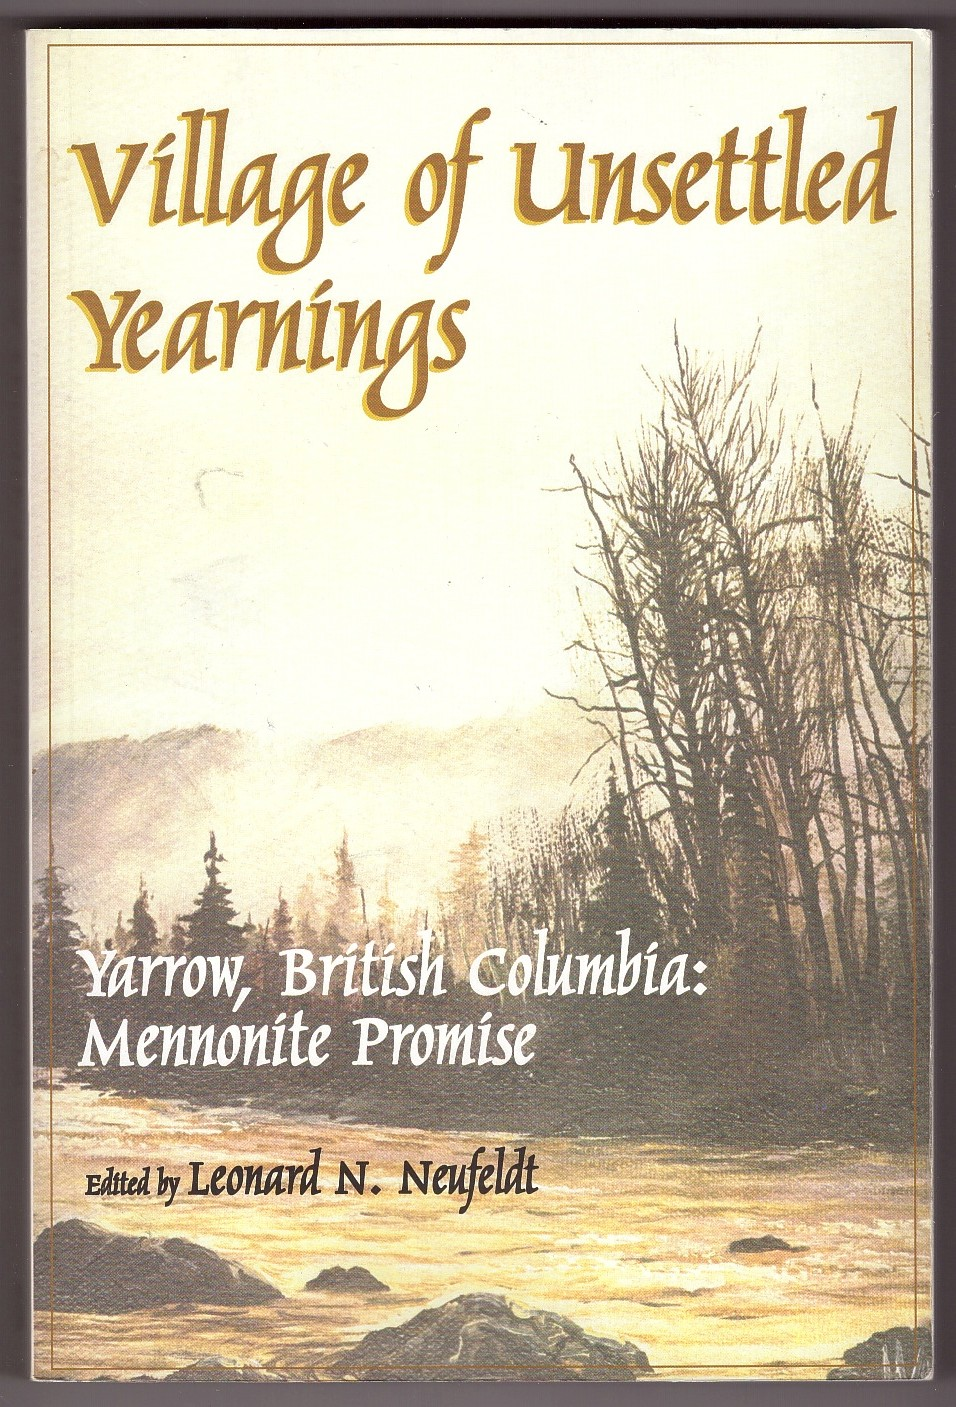 Image for Village of Unsettled Yearnings  Yarrow, British Columbia: Mennonite Promise